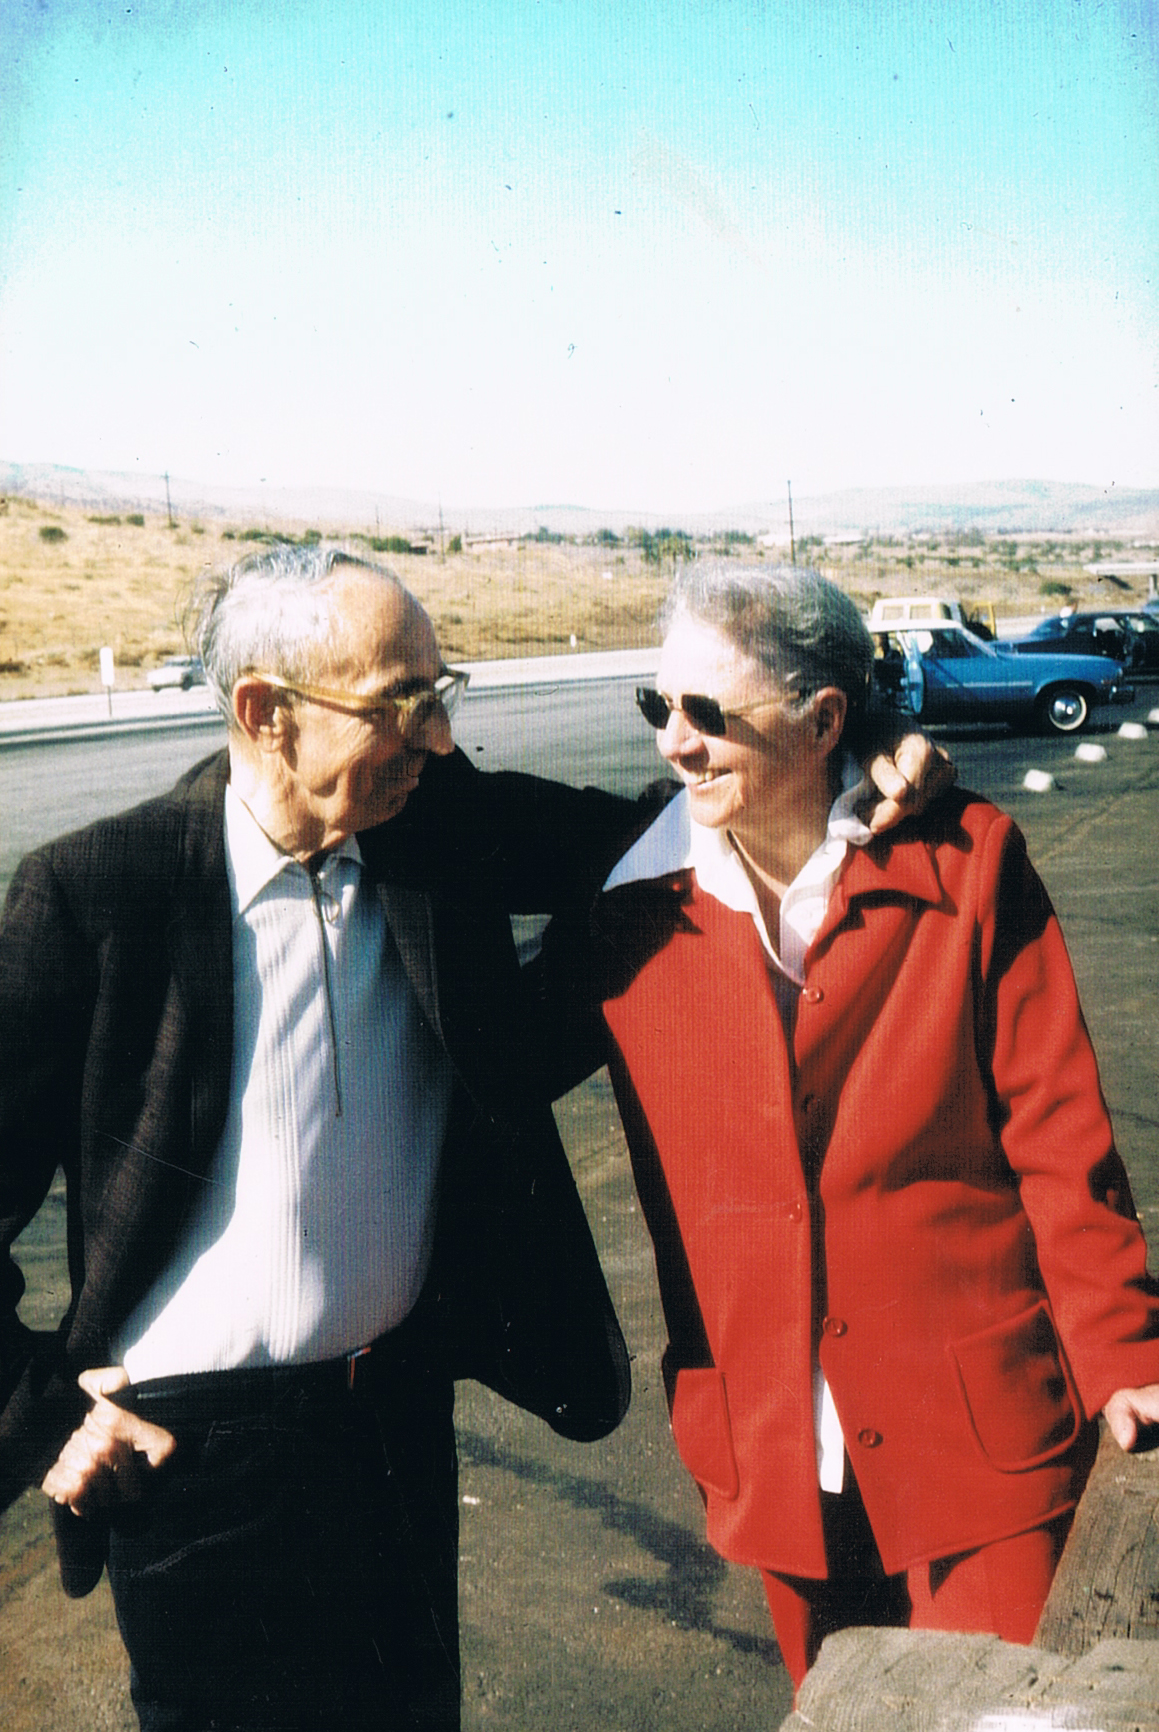 Edmond and Leigh in the Antelope Valley; courtesy of their friend, Swedish author Bertil Falk, who took the photograph.